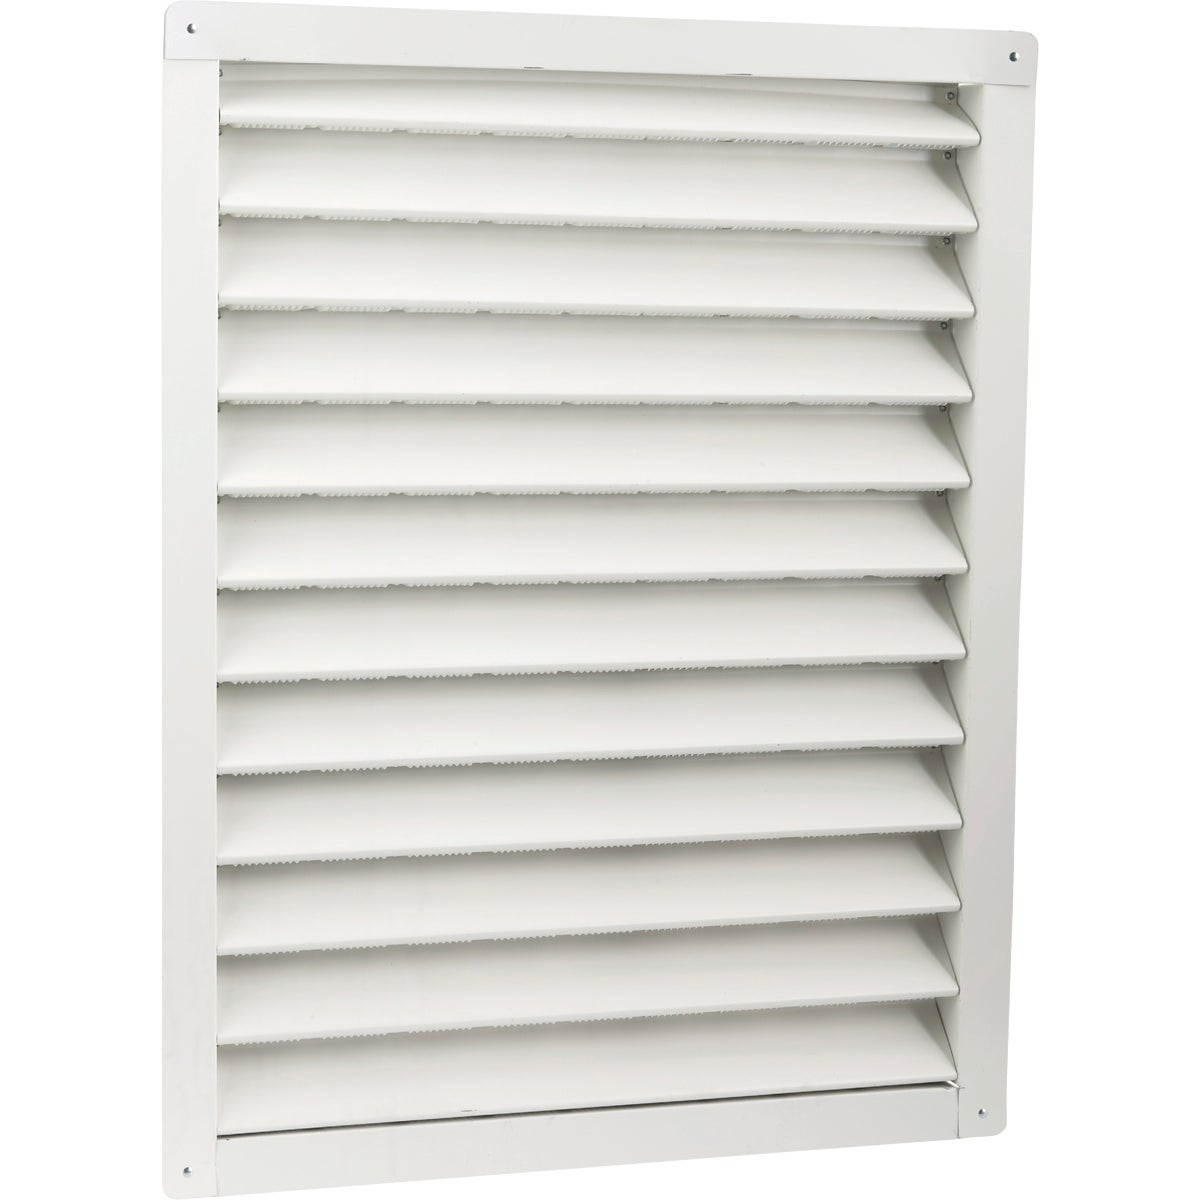 18X24WHT ALM WALL LOUVER - 81237 by Air Vent Inc